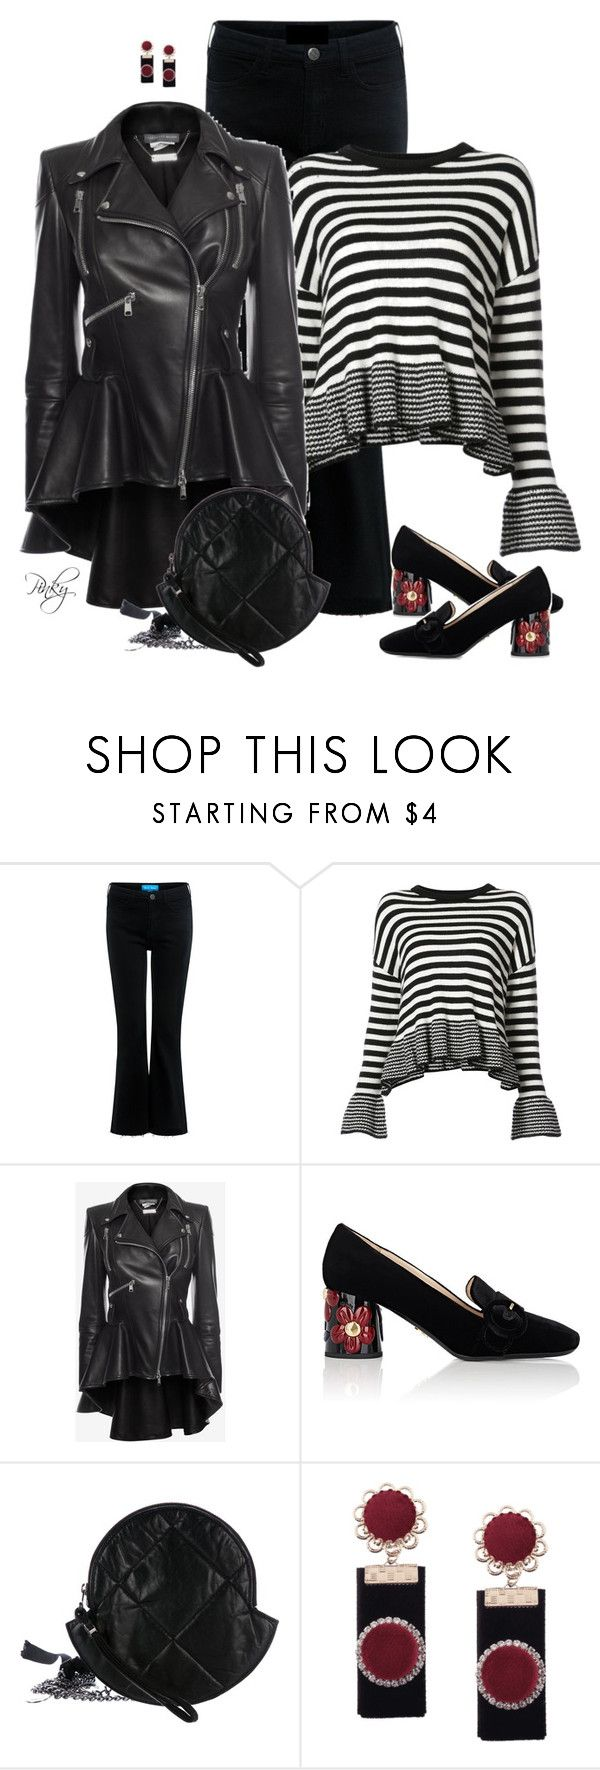 """Striped Jumper & Heeled Loafers"" by pinkystyle ❤ liked on Polyvore featuring M.i.h Jeans, Cinq à Sept, Alexander McQueen, Prada and Moncler"